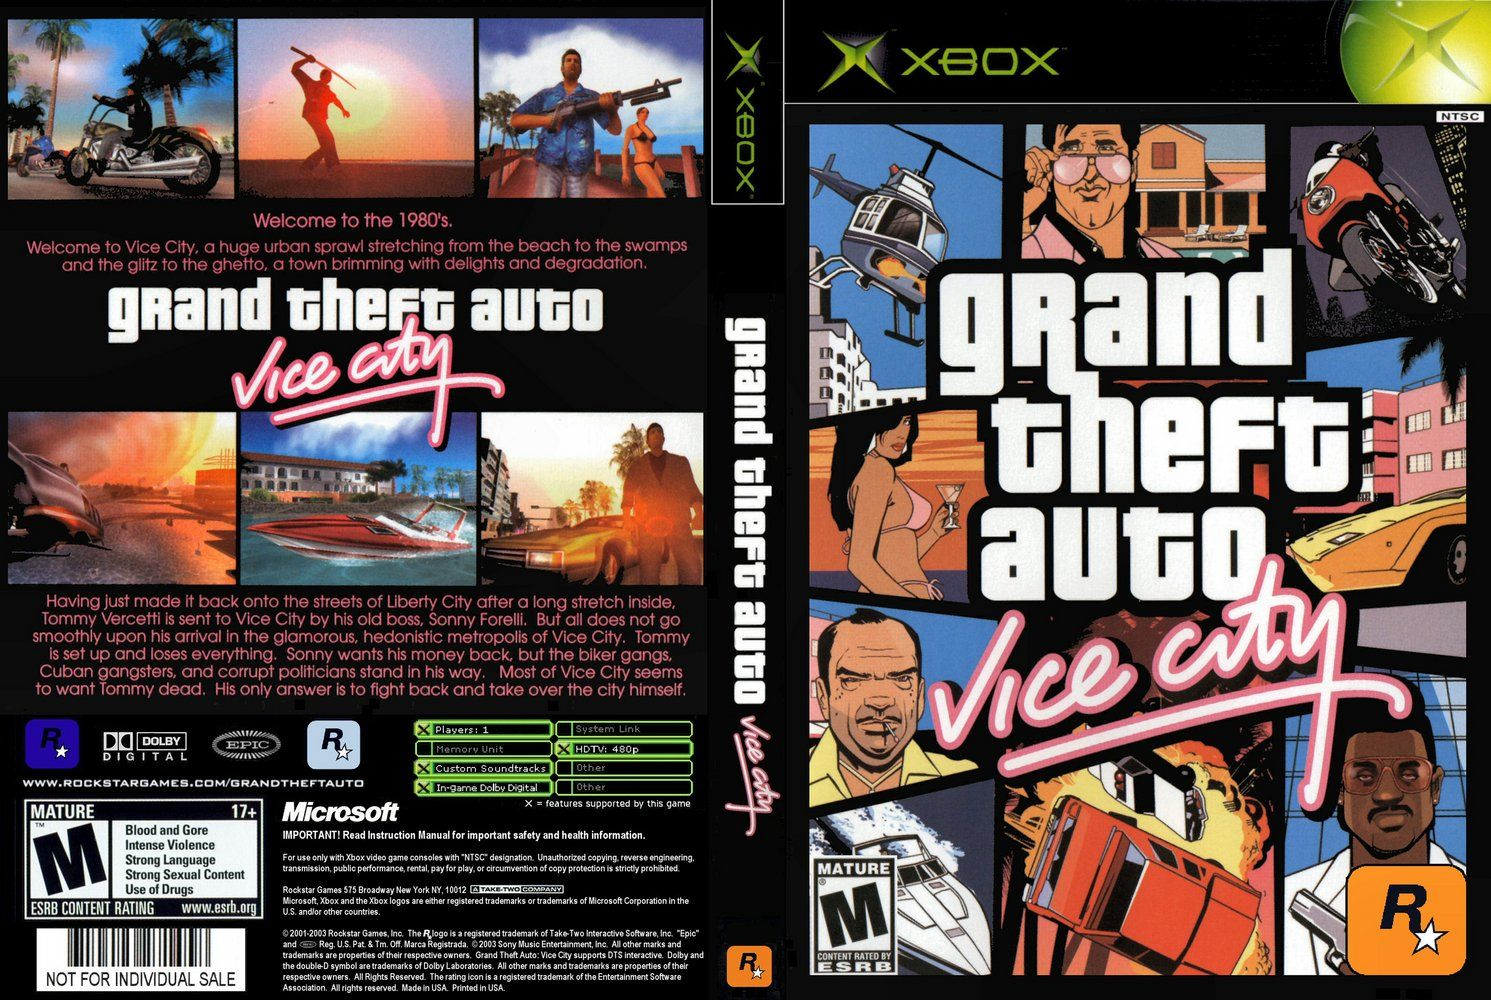 Gta vice city xxx images exploited photos